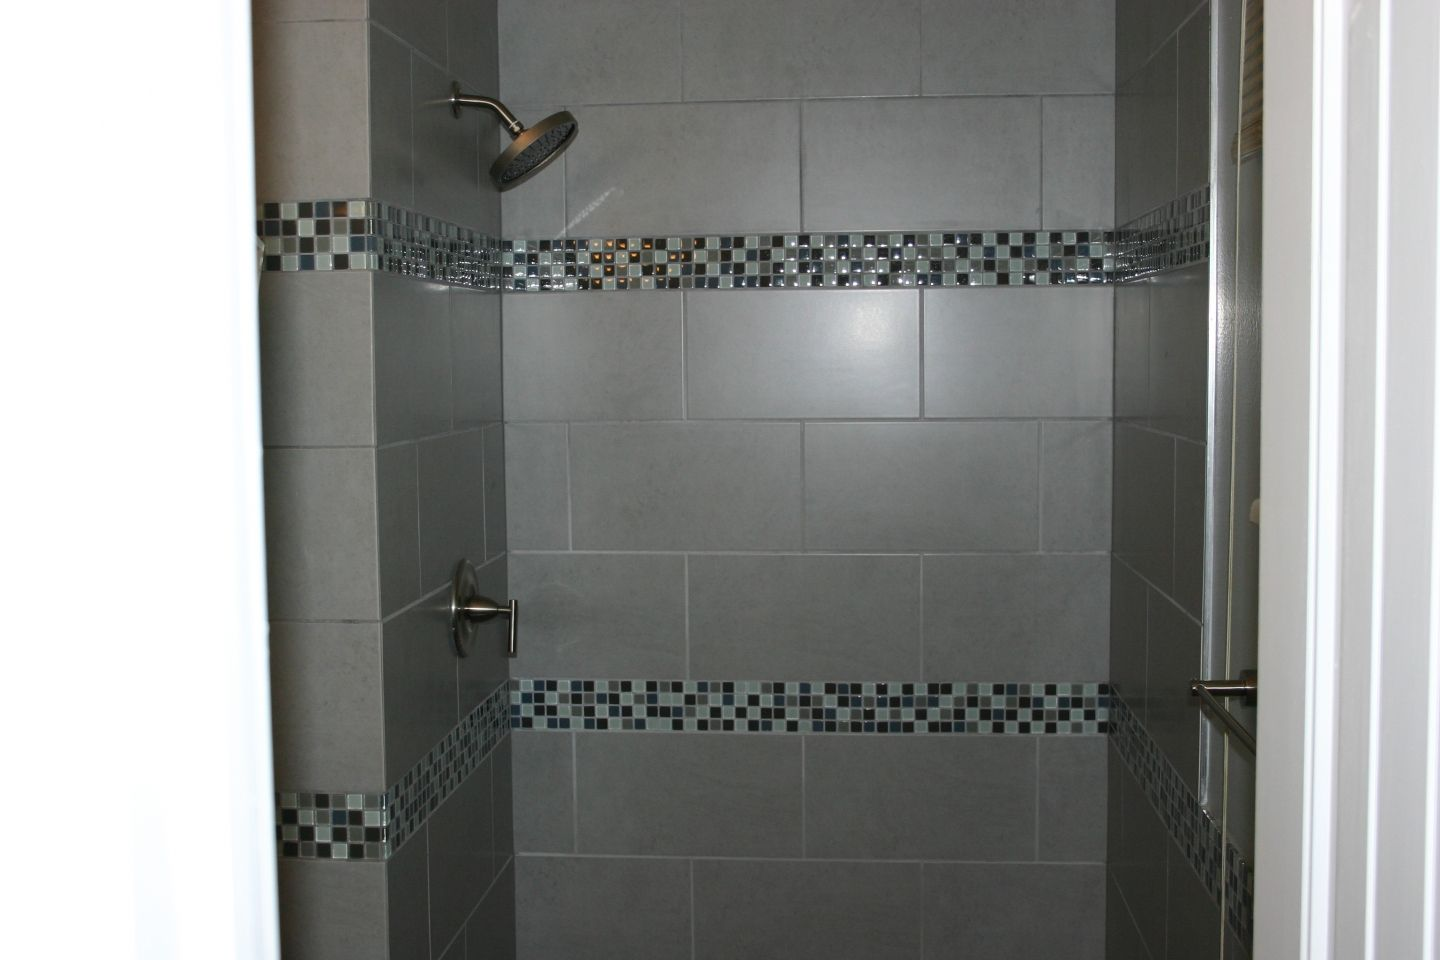 Excellent Unique Gray Tile Designs Bathroom Ceramic Design Ideas Tiles 2014